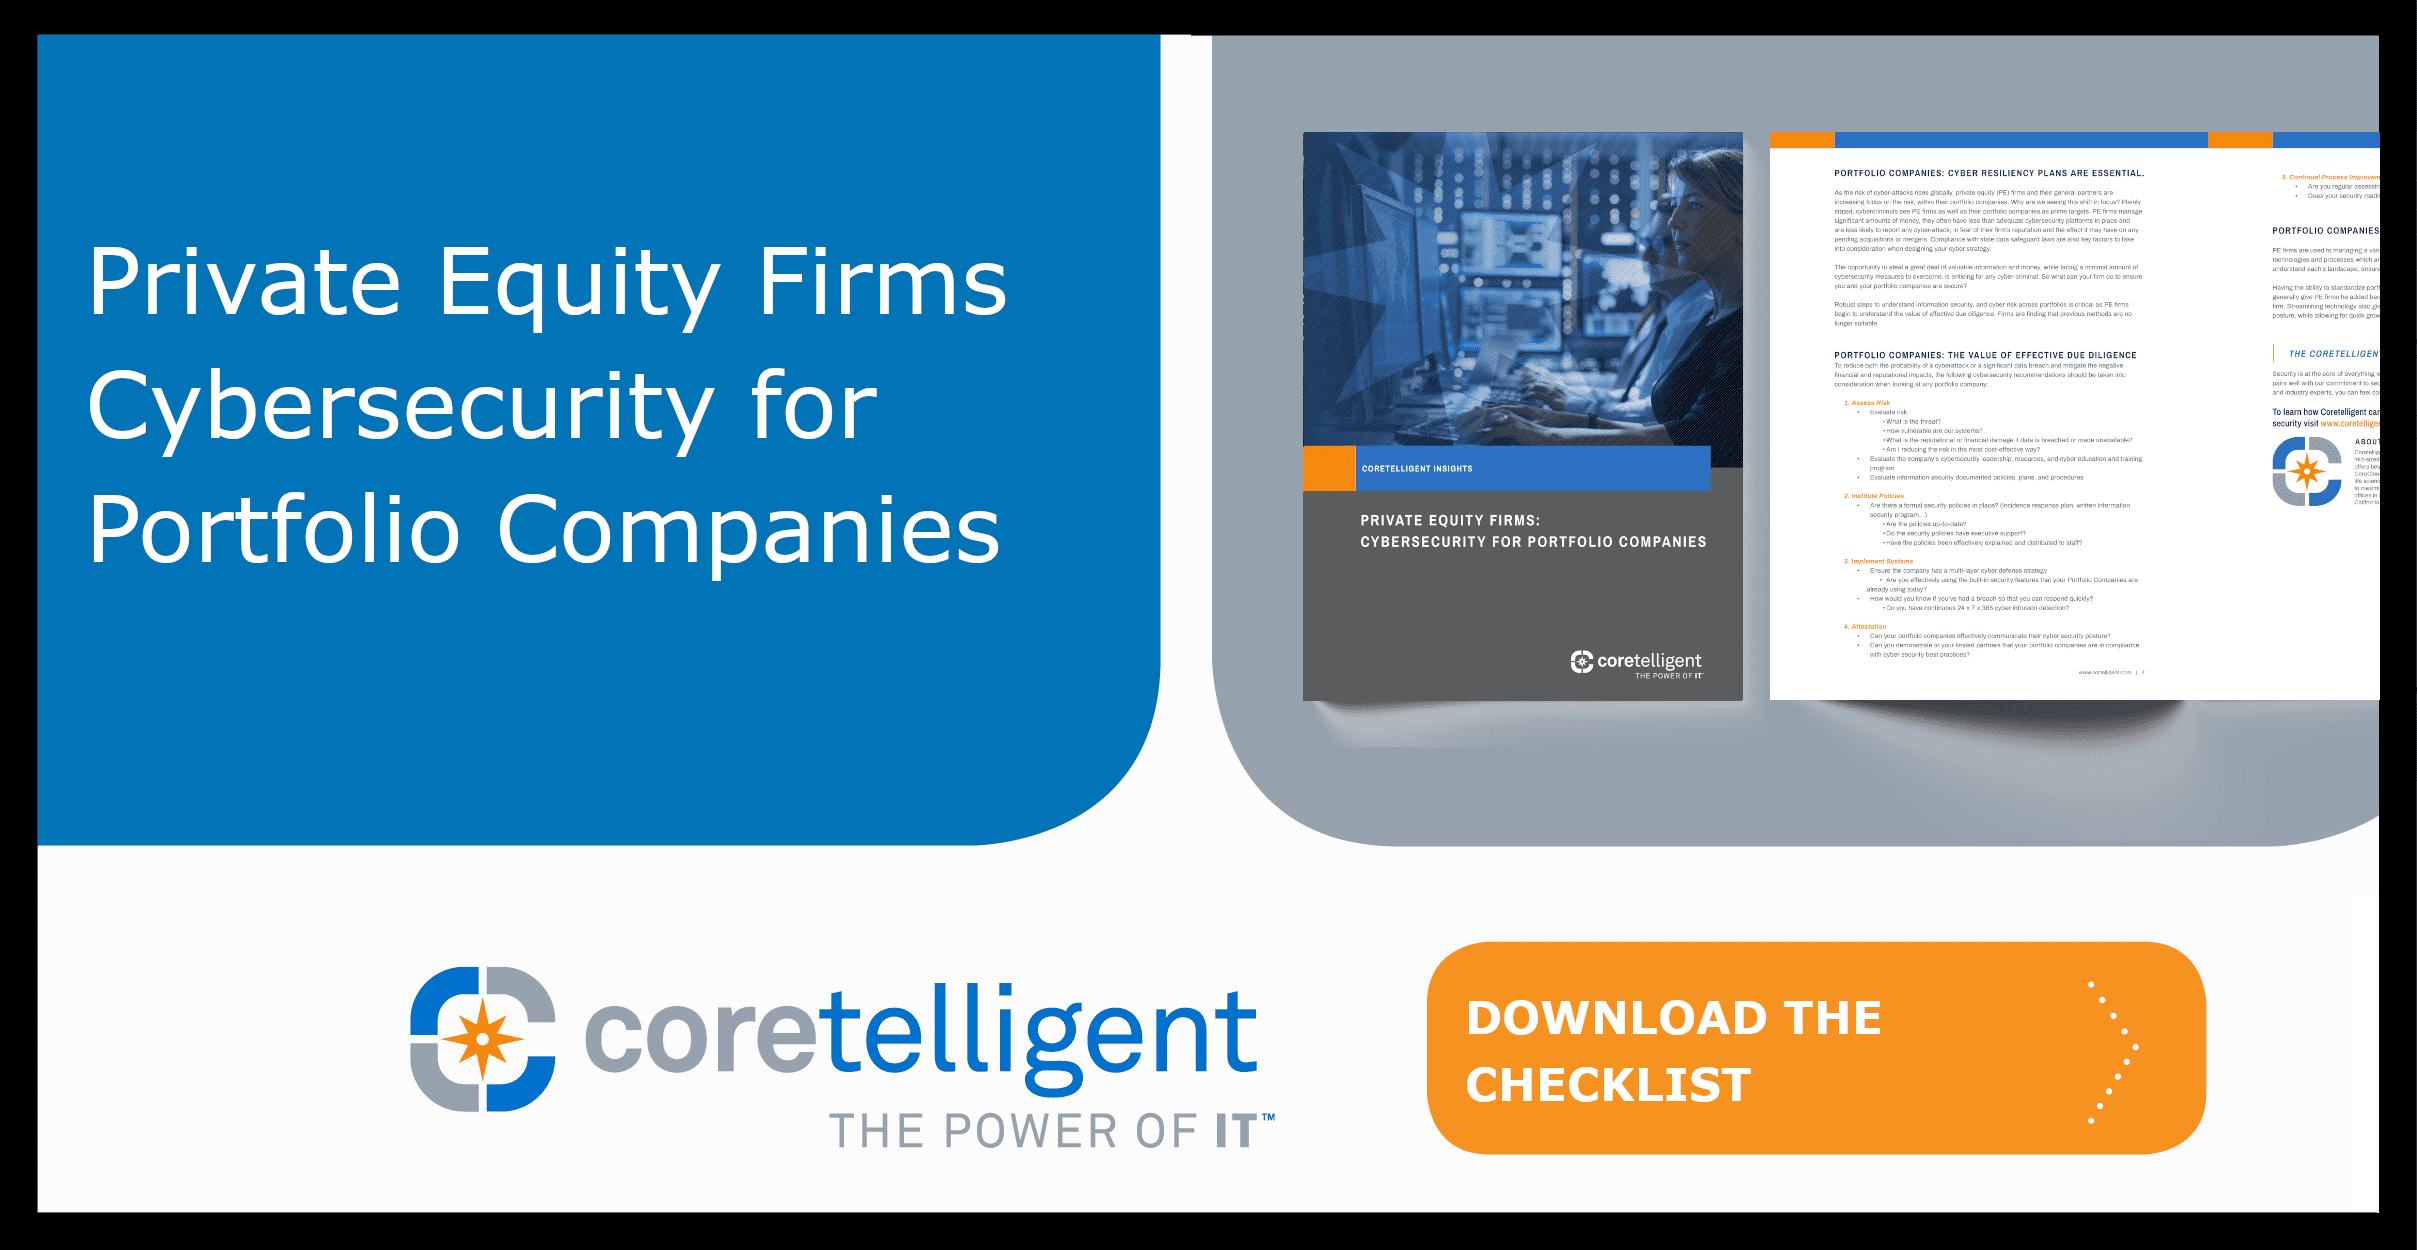 Private Equity Firms Cybersecurity for Portfolio Companies